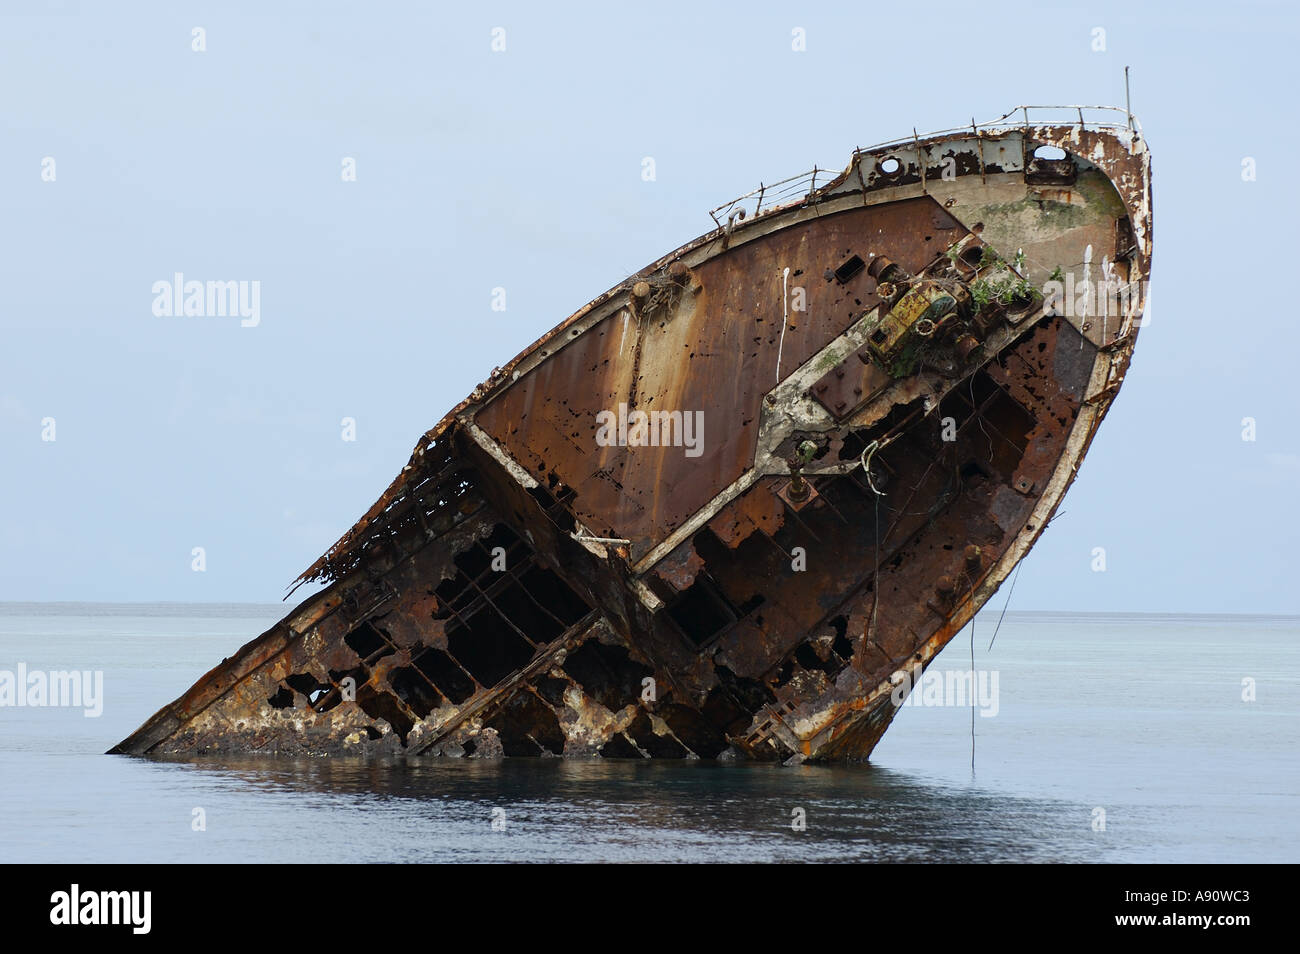 Bow of a shipwreck in the ocean - Stock Image